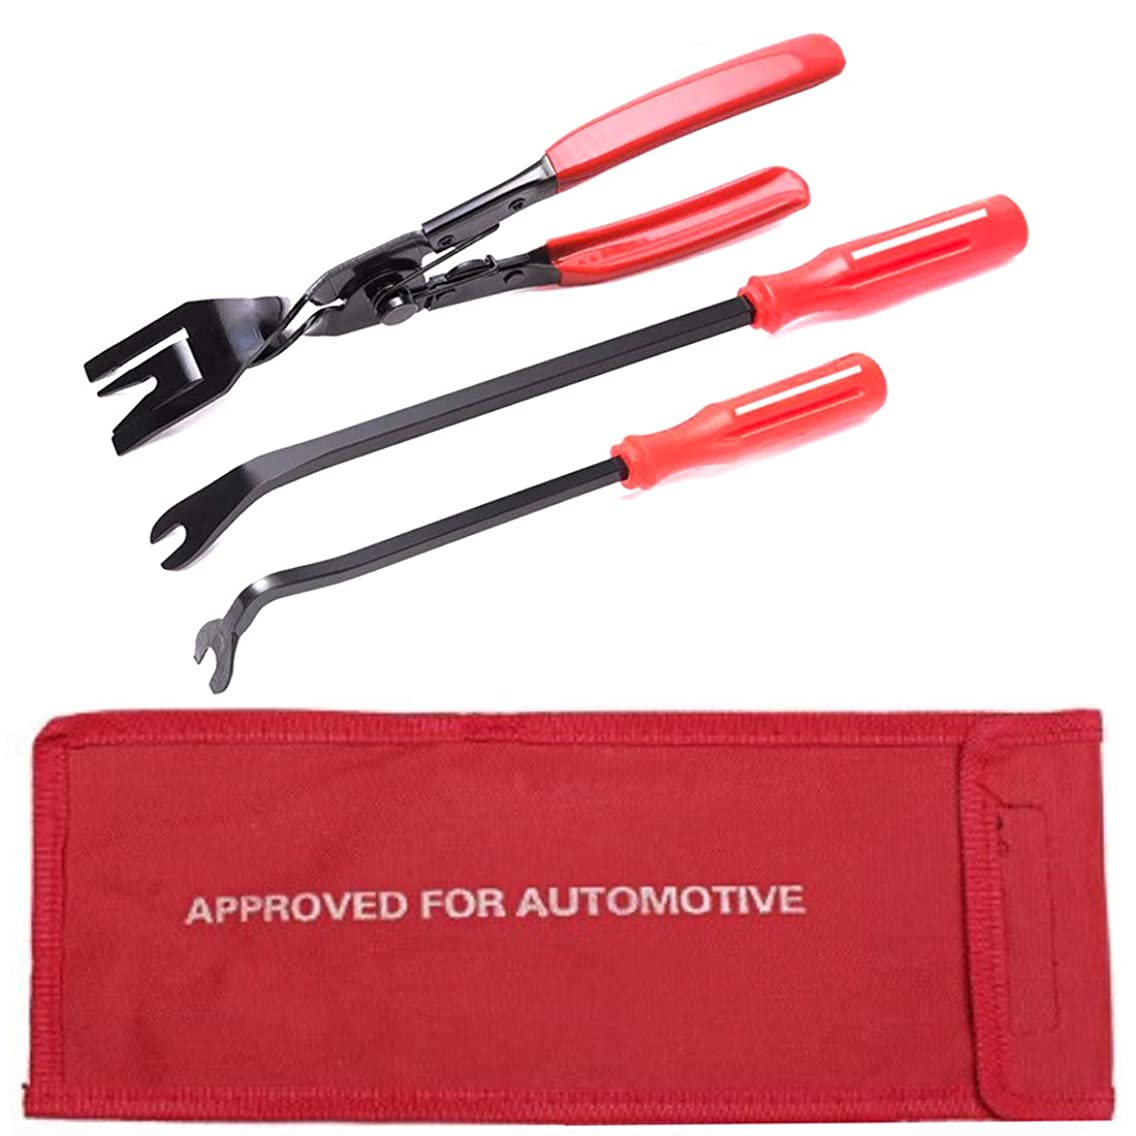 UTSAUTO 3 Pcs Clip Pliers Set & Fastener Remover Auto Trim Removal Tool Kit Auto Upholstery Combo Repair Kit with Storage Bag for Car Door Panel Dashboard